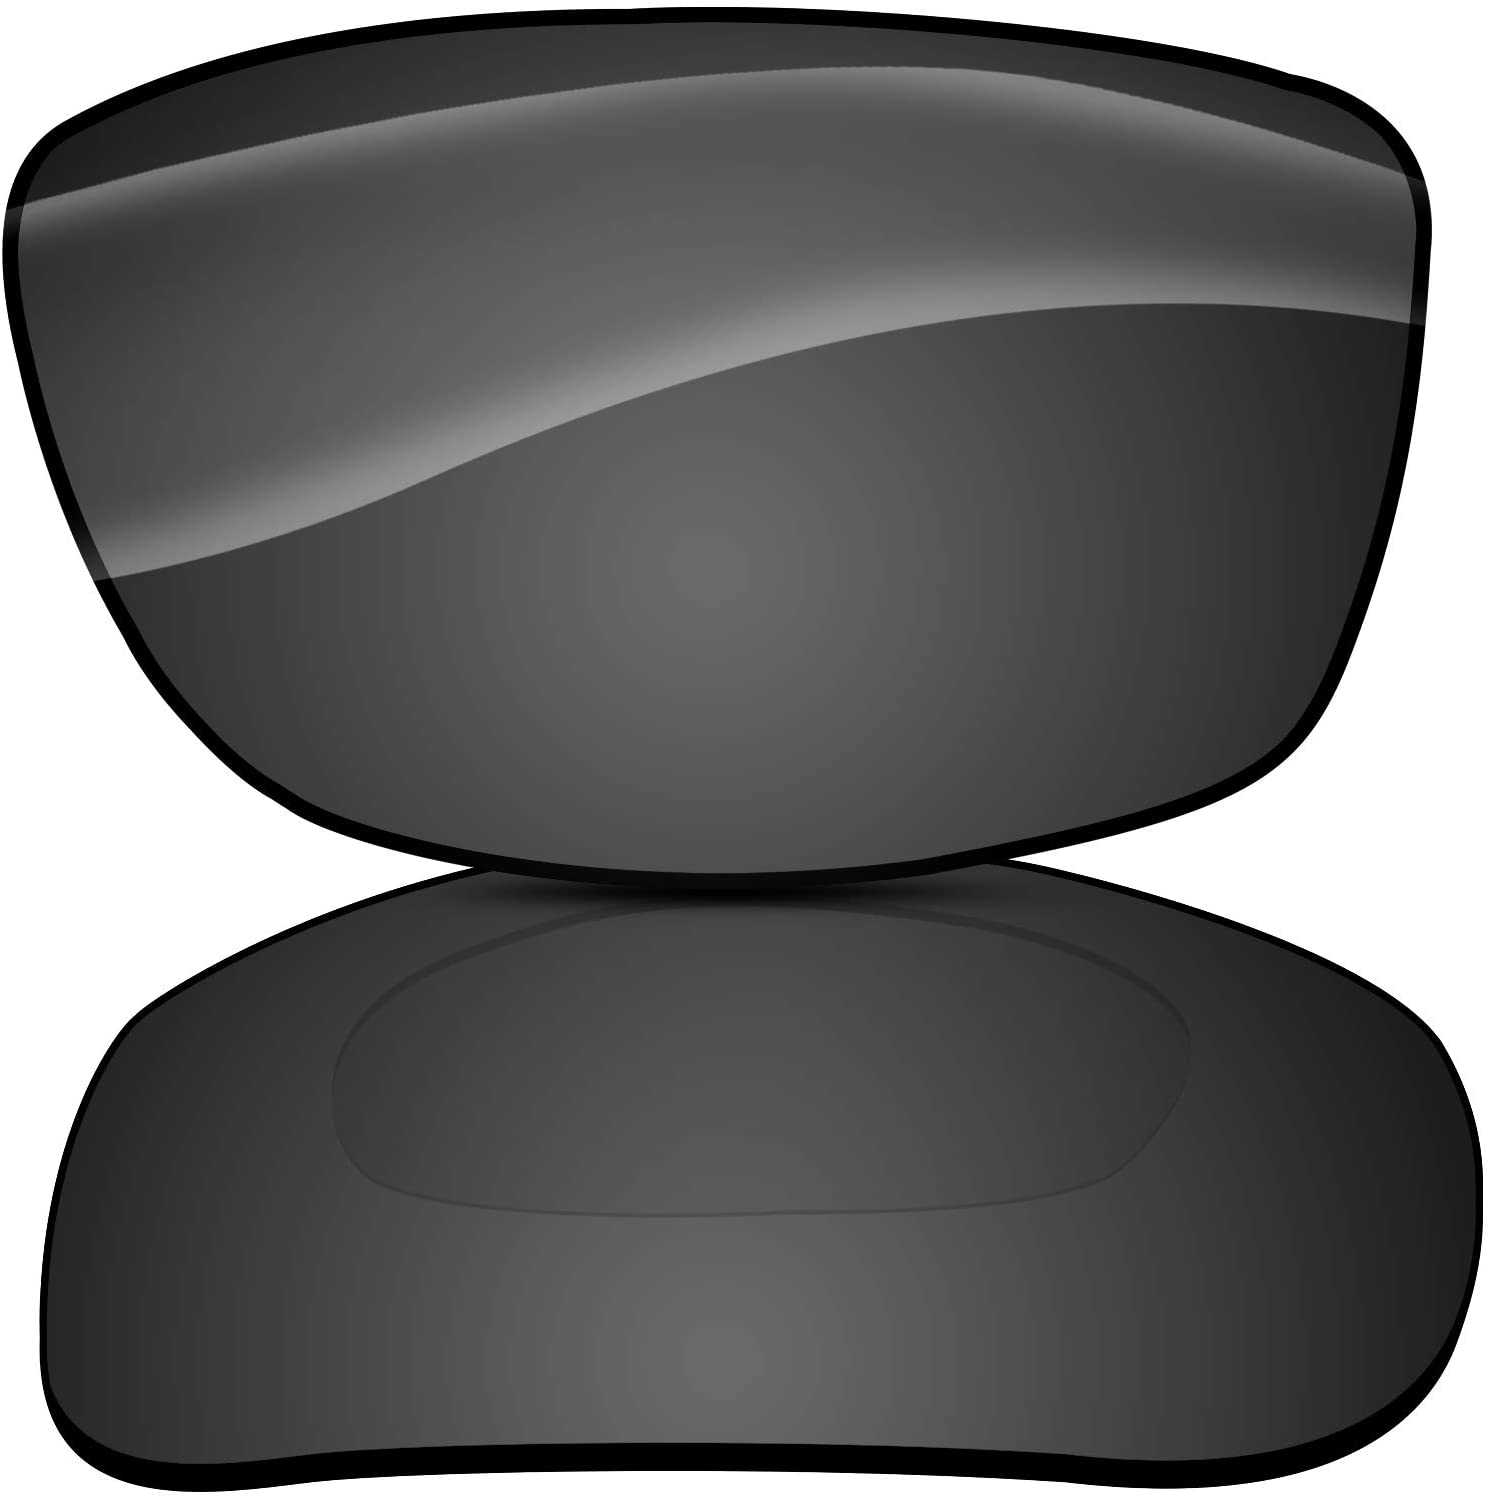 COOLENS Polarized Replacement Lenses for Oakley Monster Pup Sunglasses UV Protection